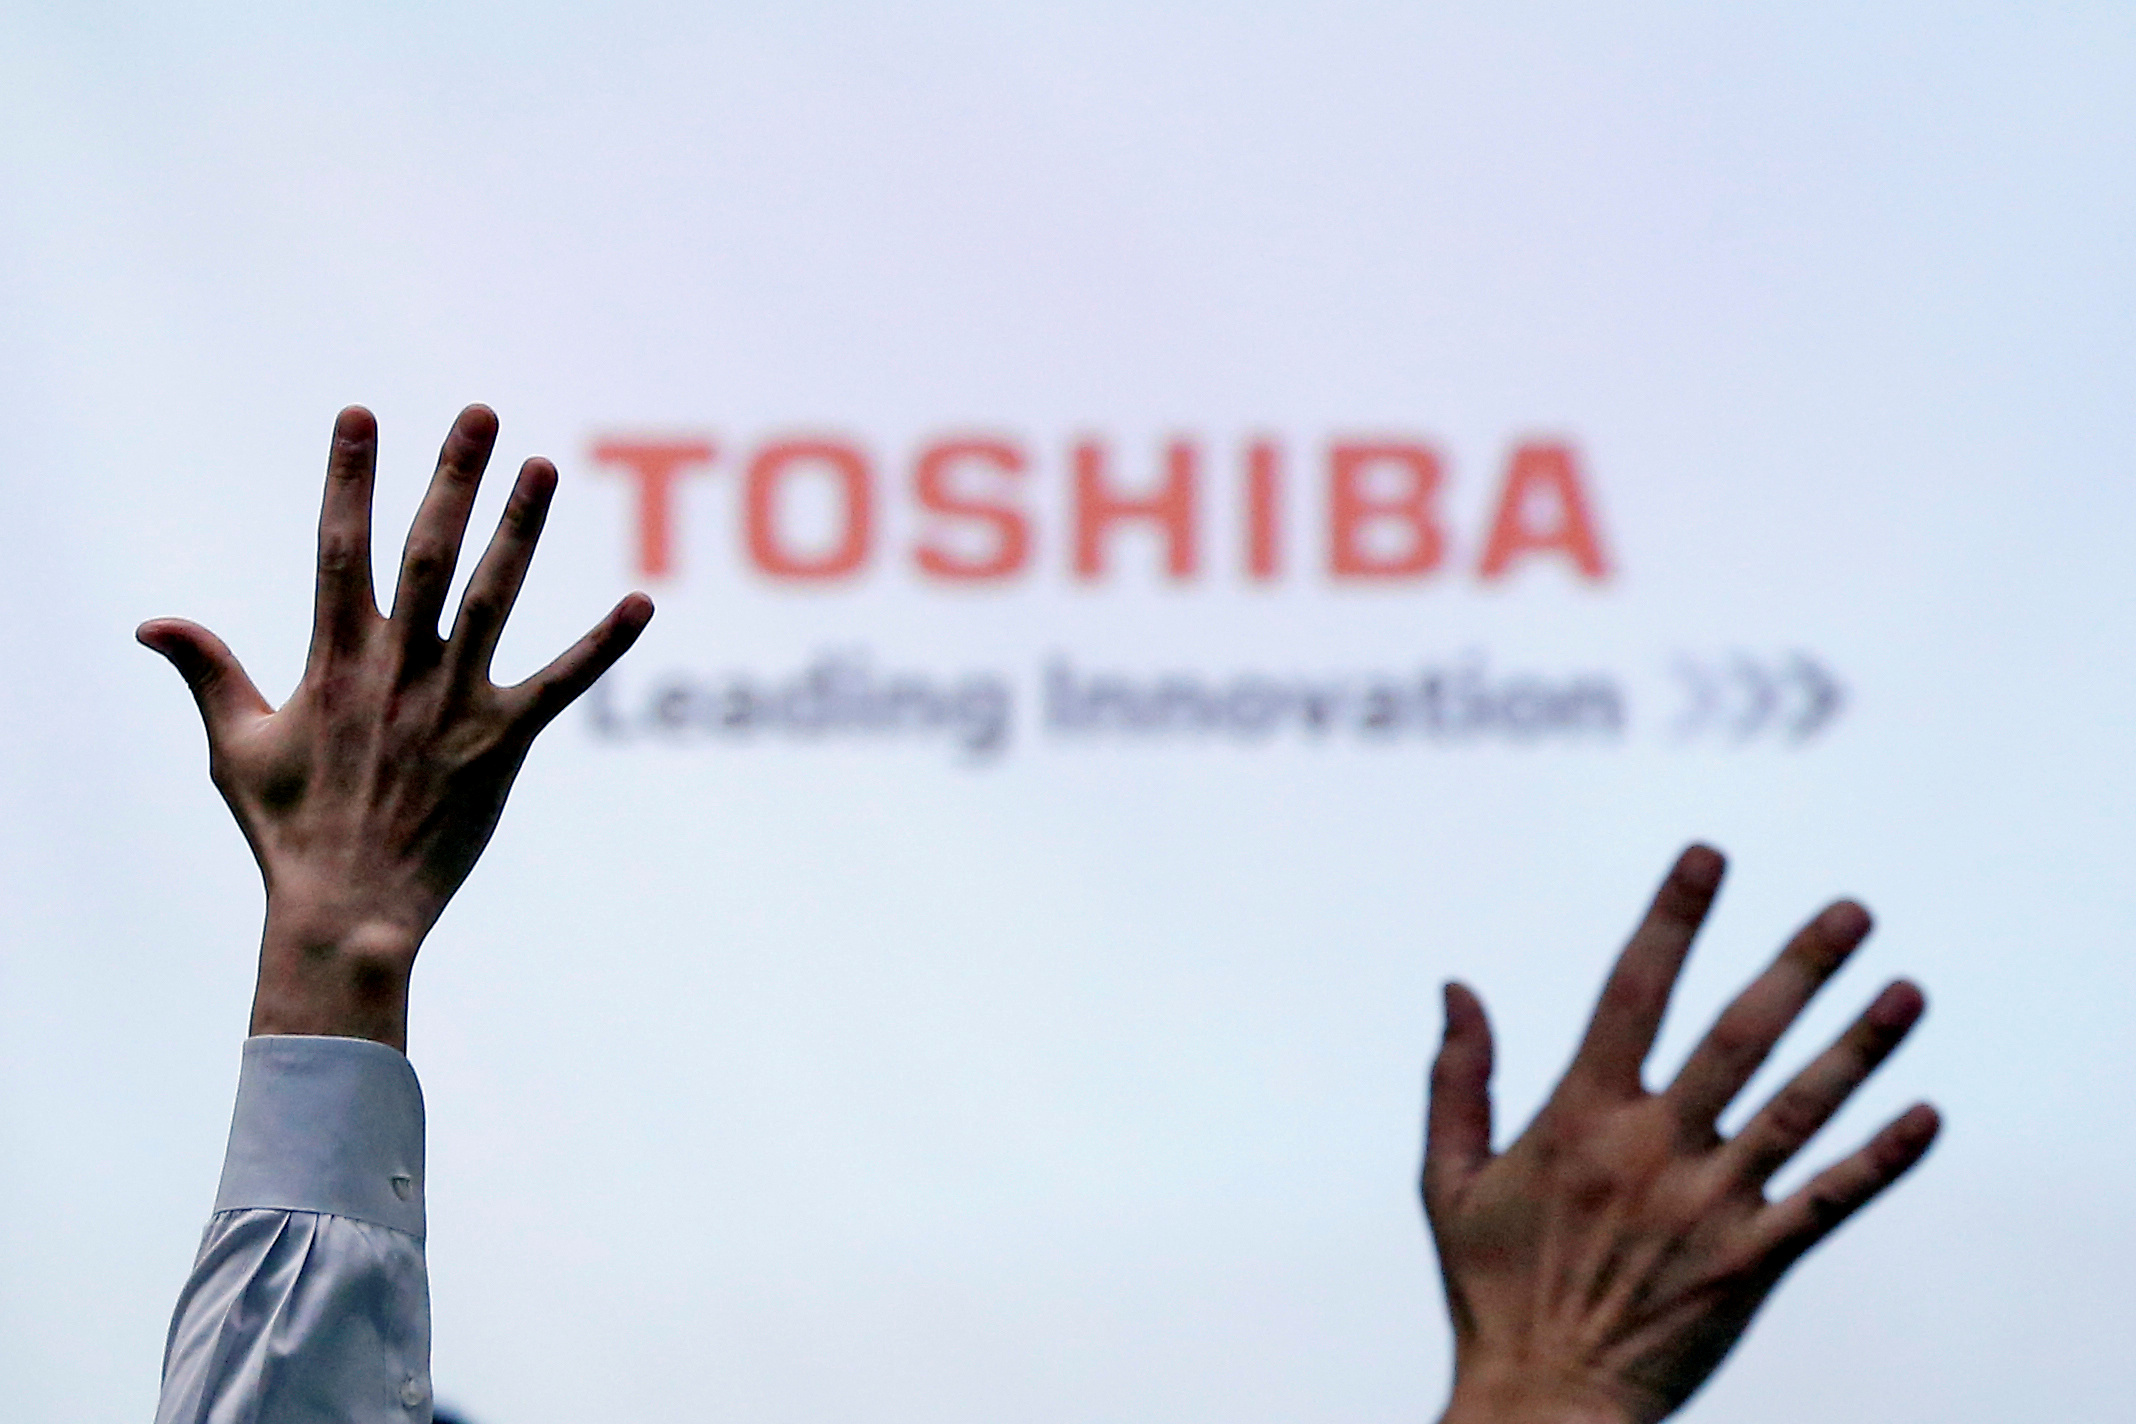 Reporters raise their hands for a question during a Toshiba news conference at the company headquarters in Tokyo, Japan, June 23, 2017. REUTERS/Issei Kato